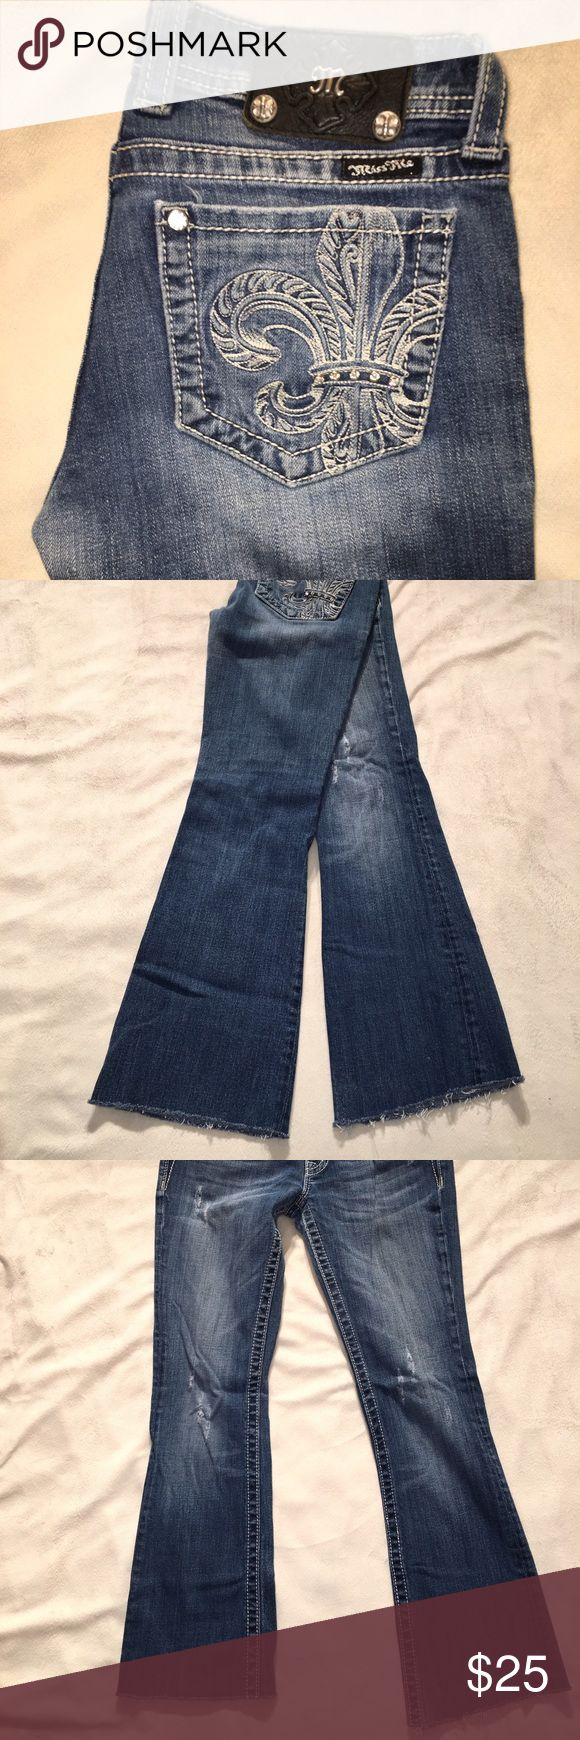 ❤️BUY ONE, GET ONE HALF OFF❤️clothes, shoes & Jean Miss Me Medium blue cut off crop jeans size 28 Inseam is an 27 Miss Me Jeans Ankle & Cropped